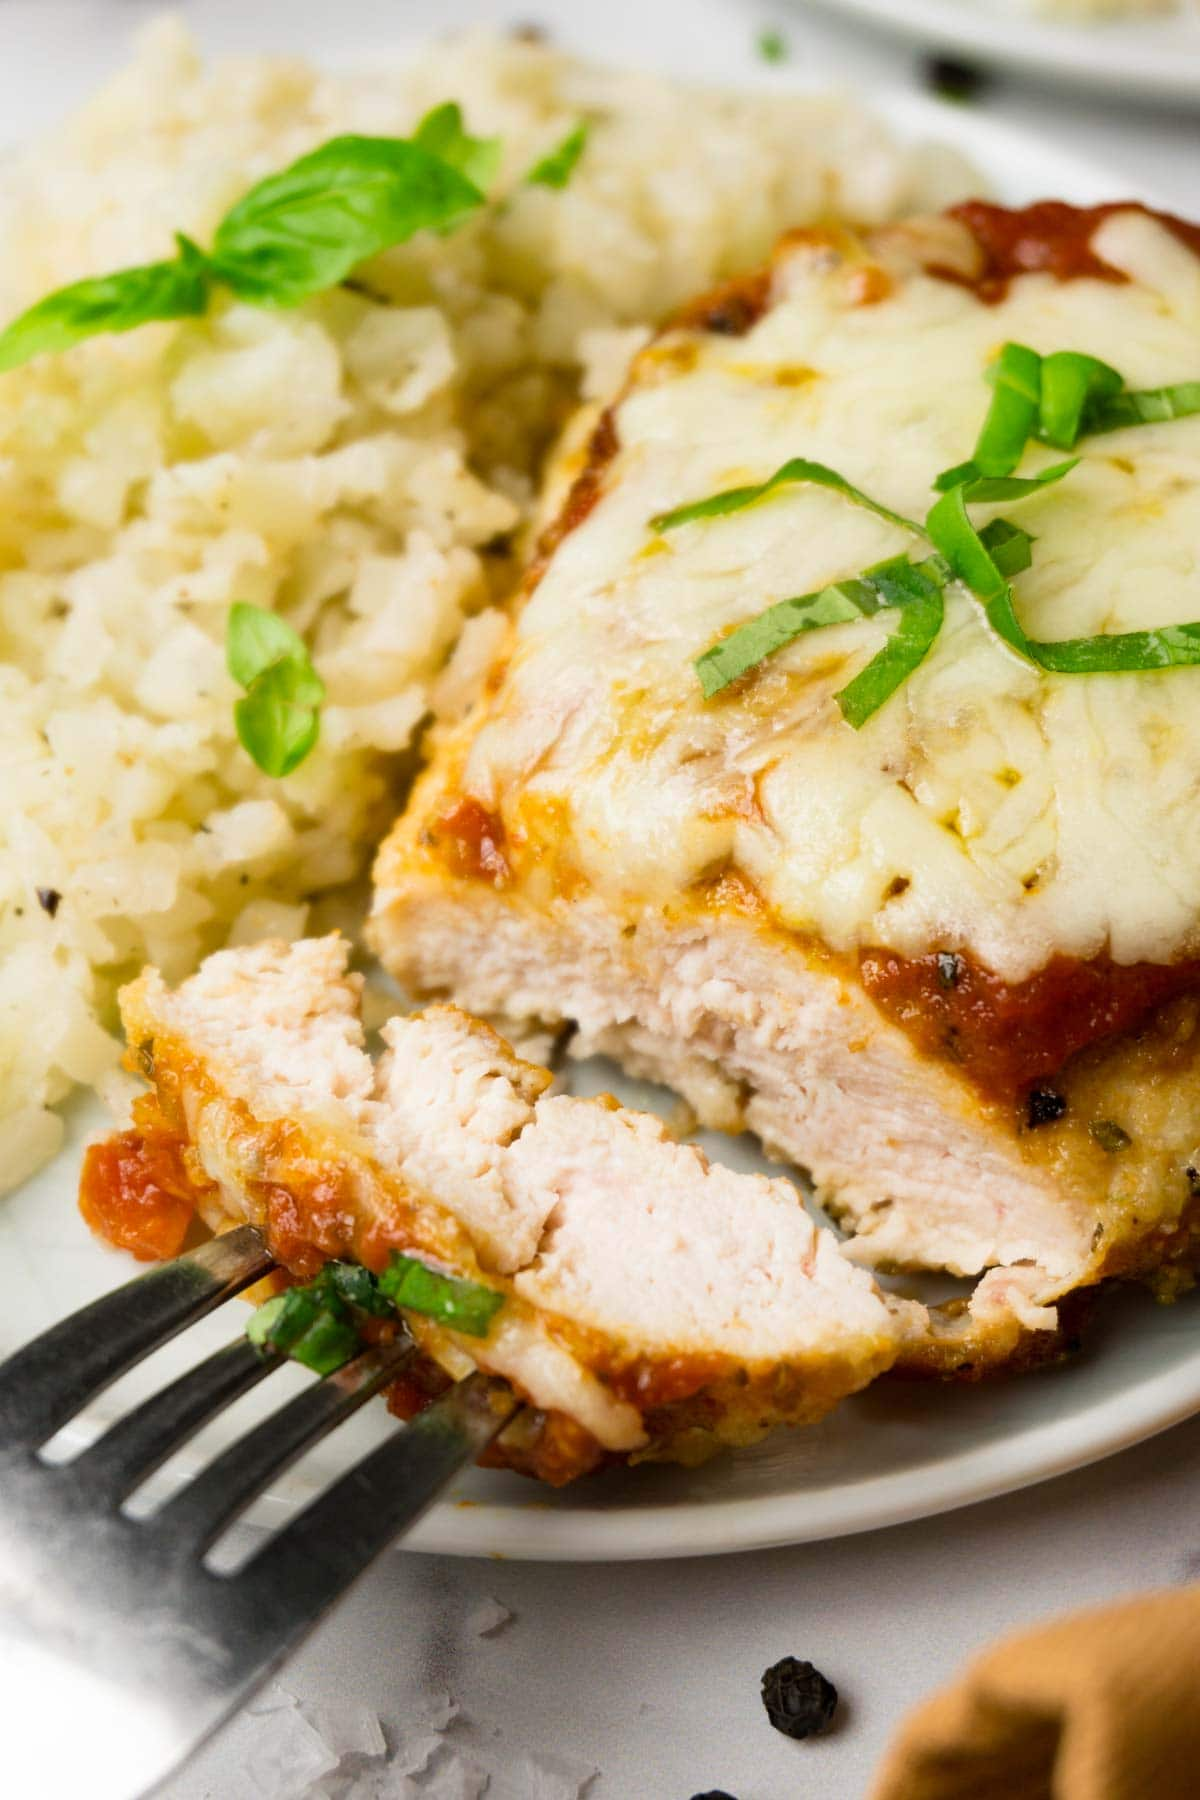 Chicken parmesan on a small round plate with cauliflower rive on the side, one piece of the chicken taken.